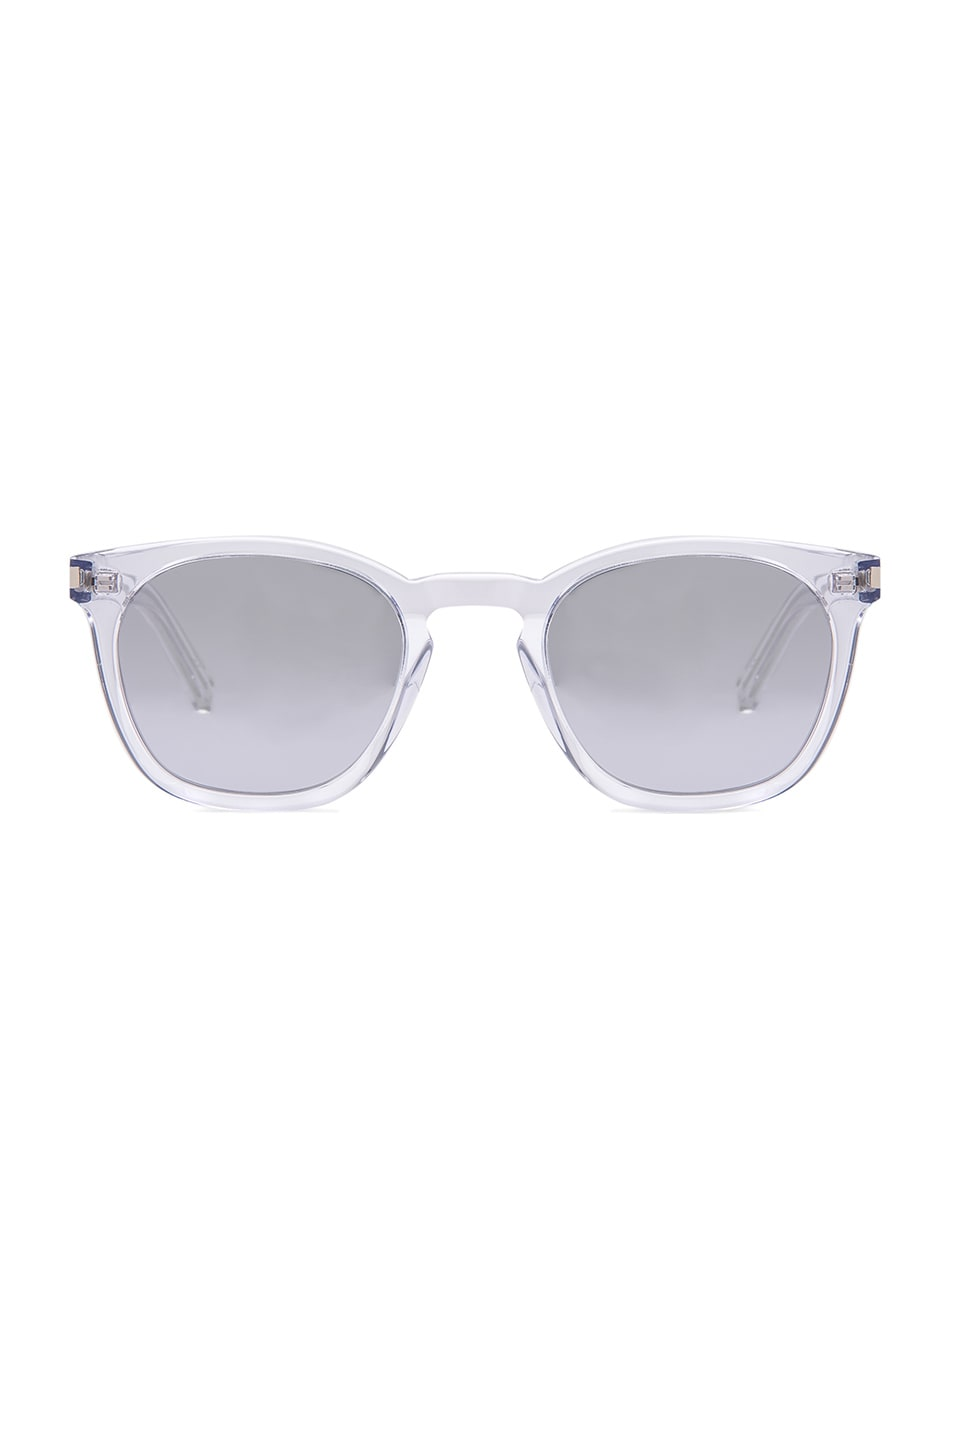 Image 1 of Saint Laurent SL 28 Sunglasses in Crystal & Silver Mirror